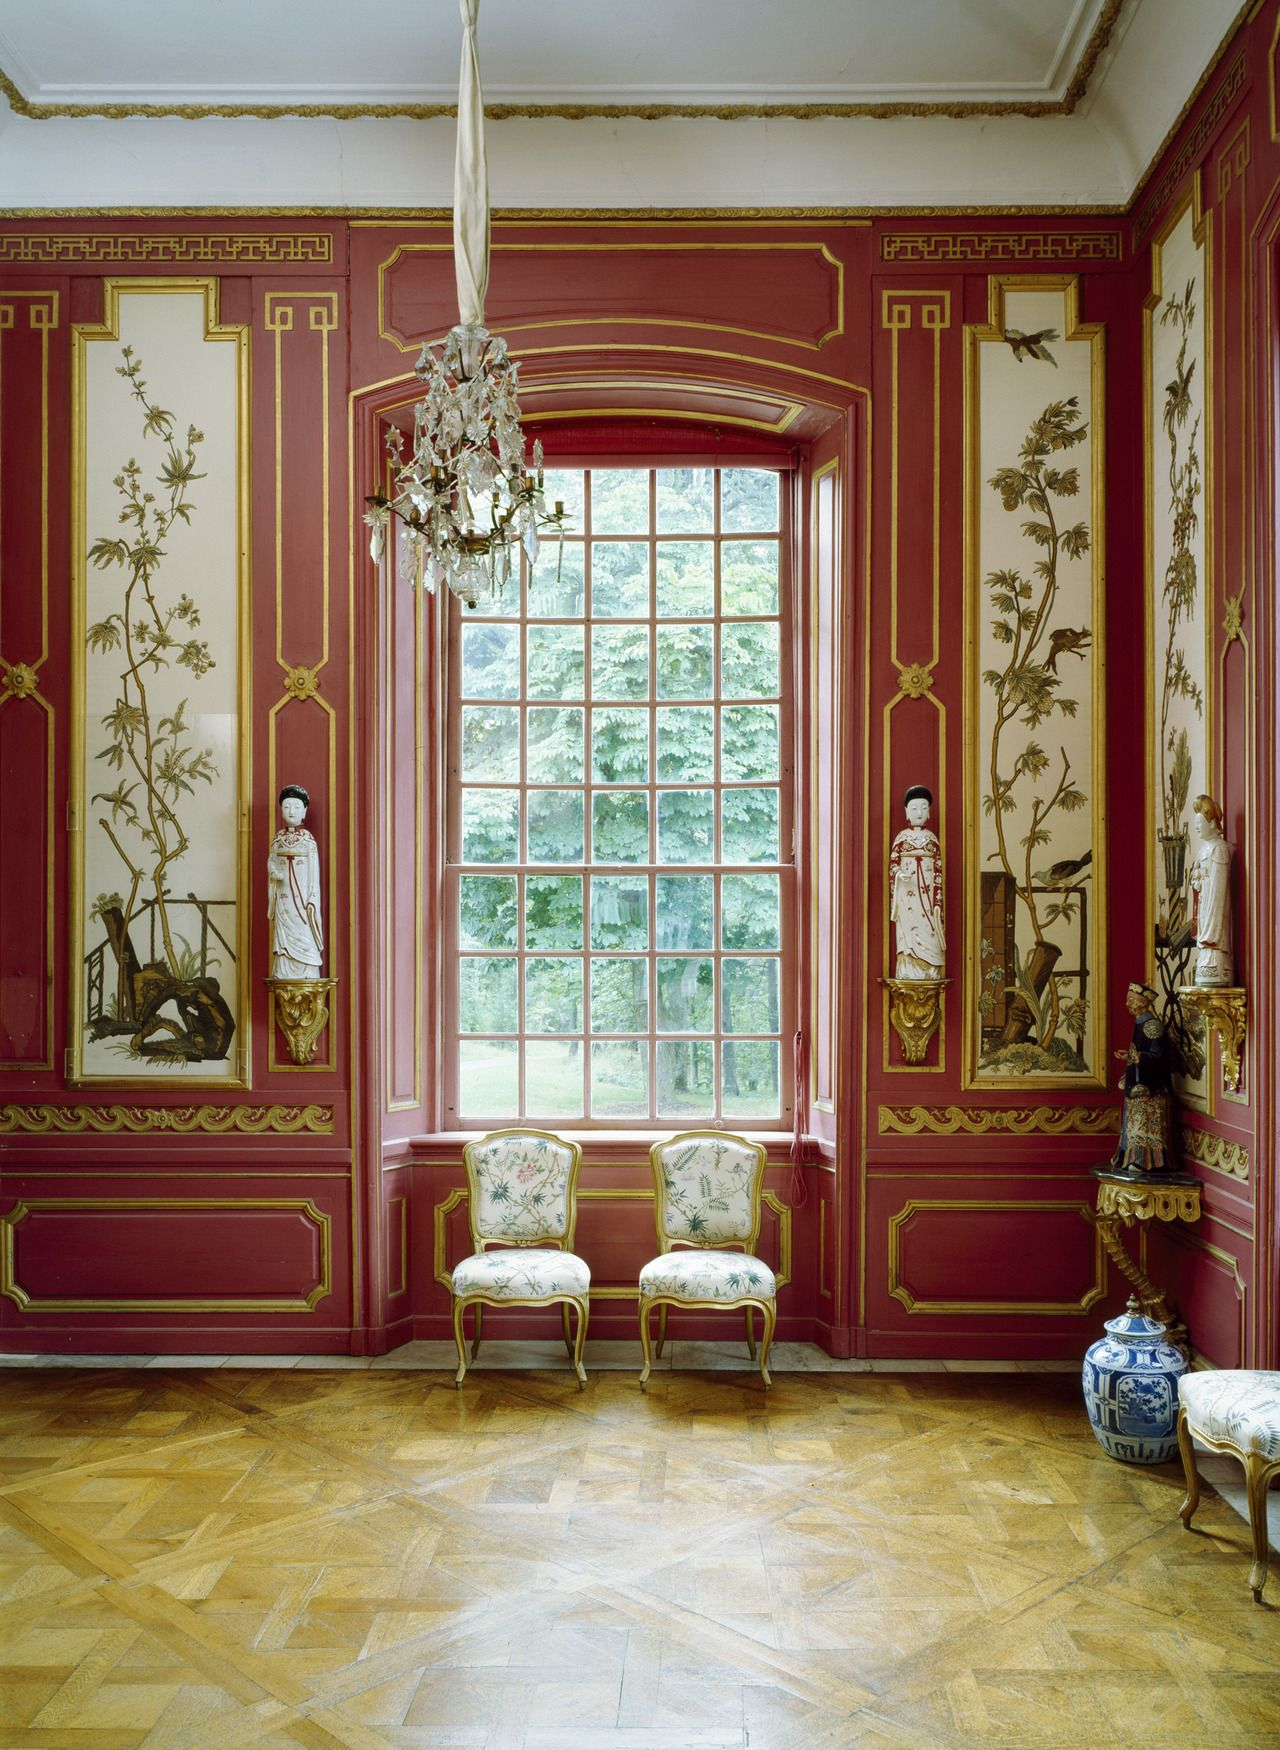 The red room at the chinese pavilion of the drottningholm palace sweden the drottningholm palace is the private residence of the swedish royal family